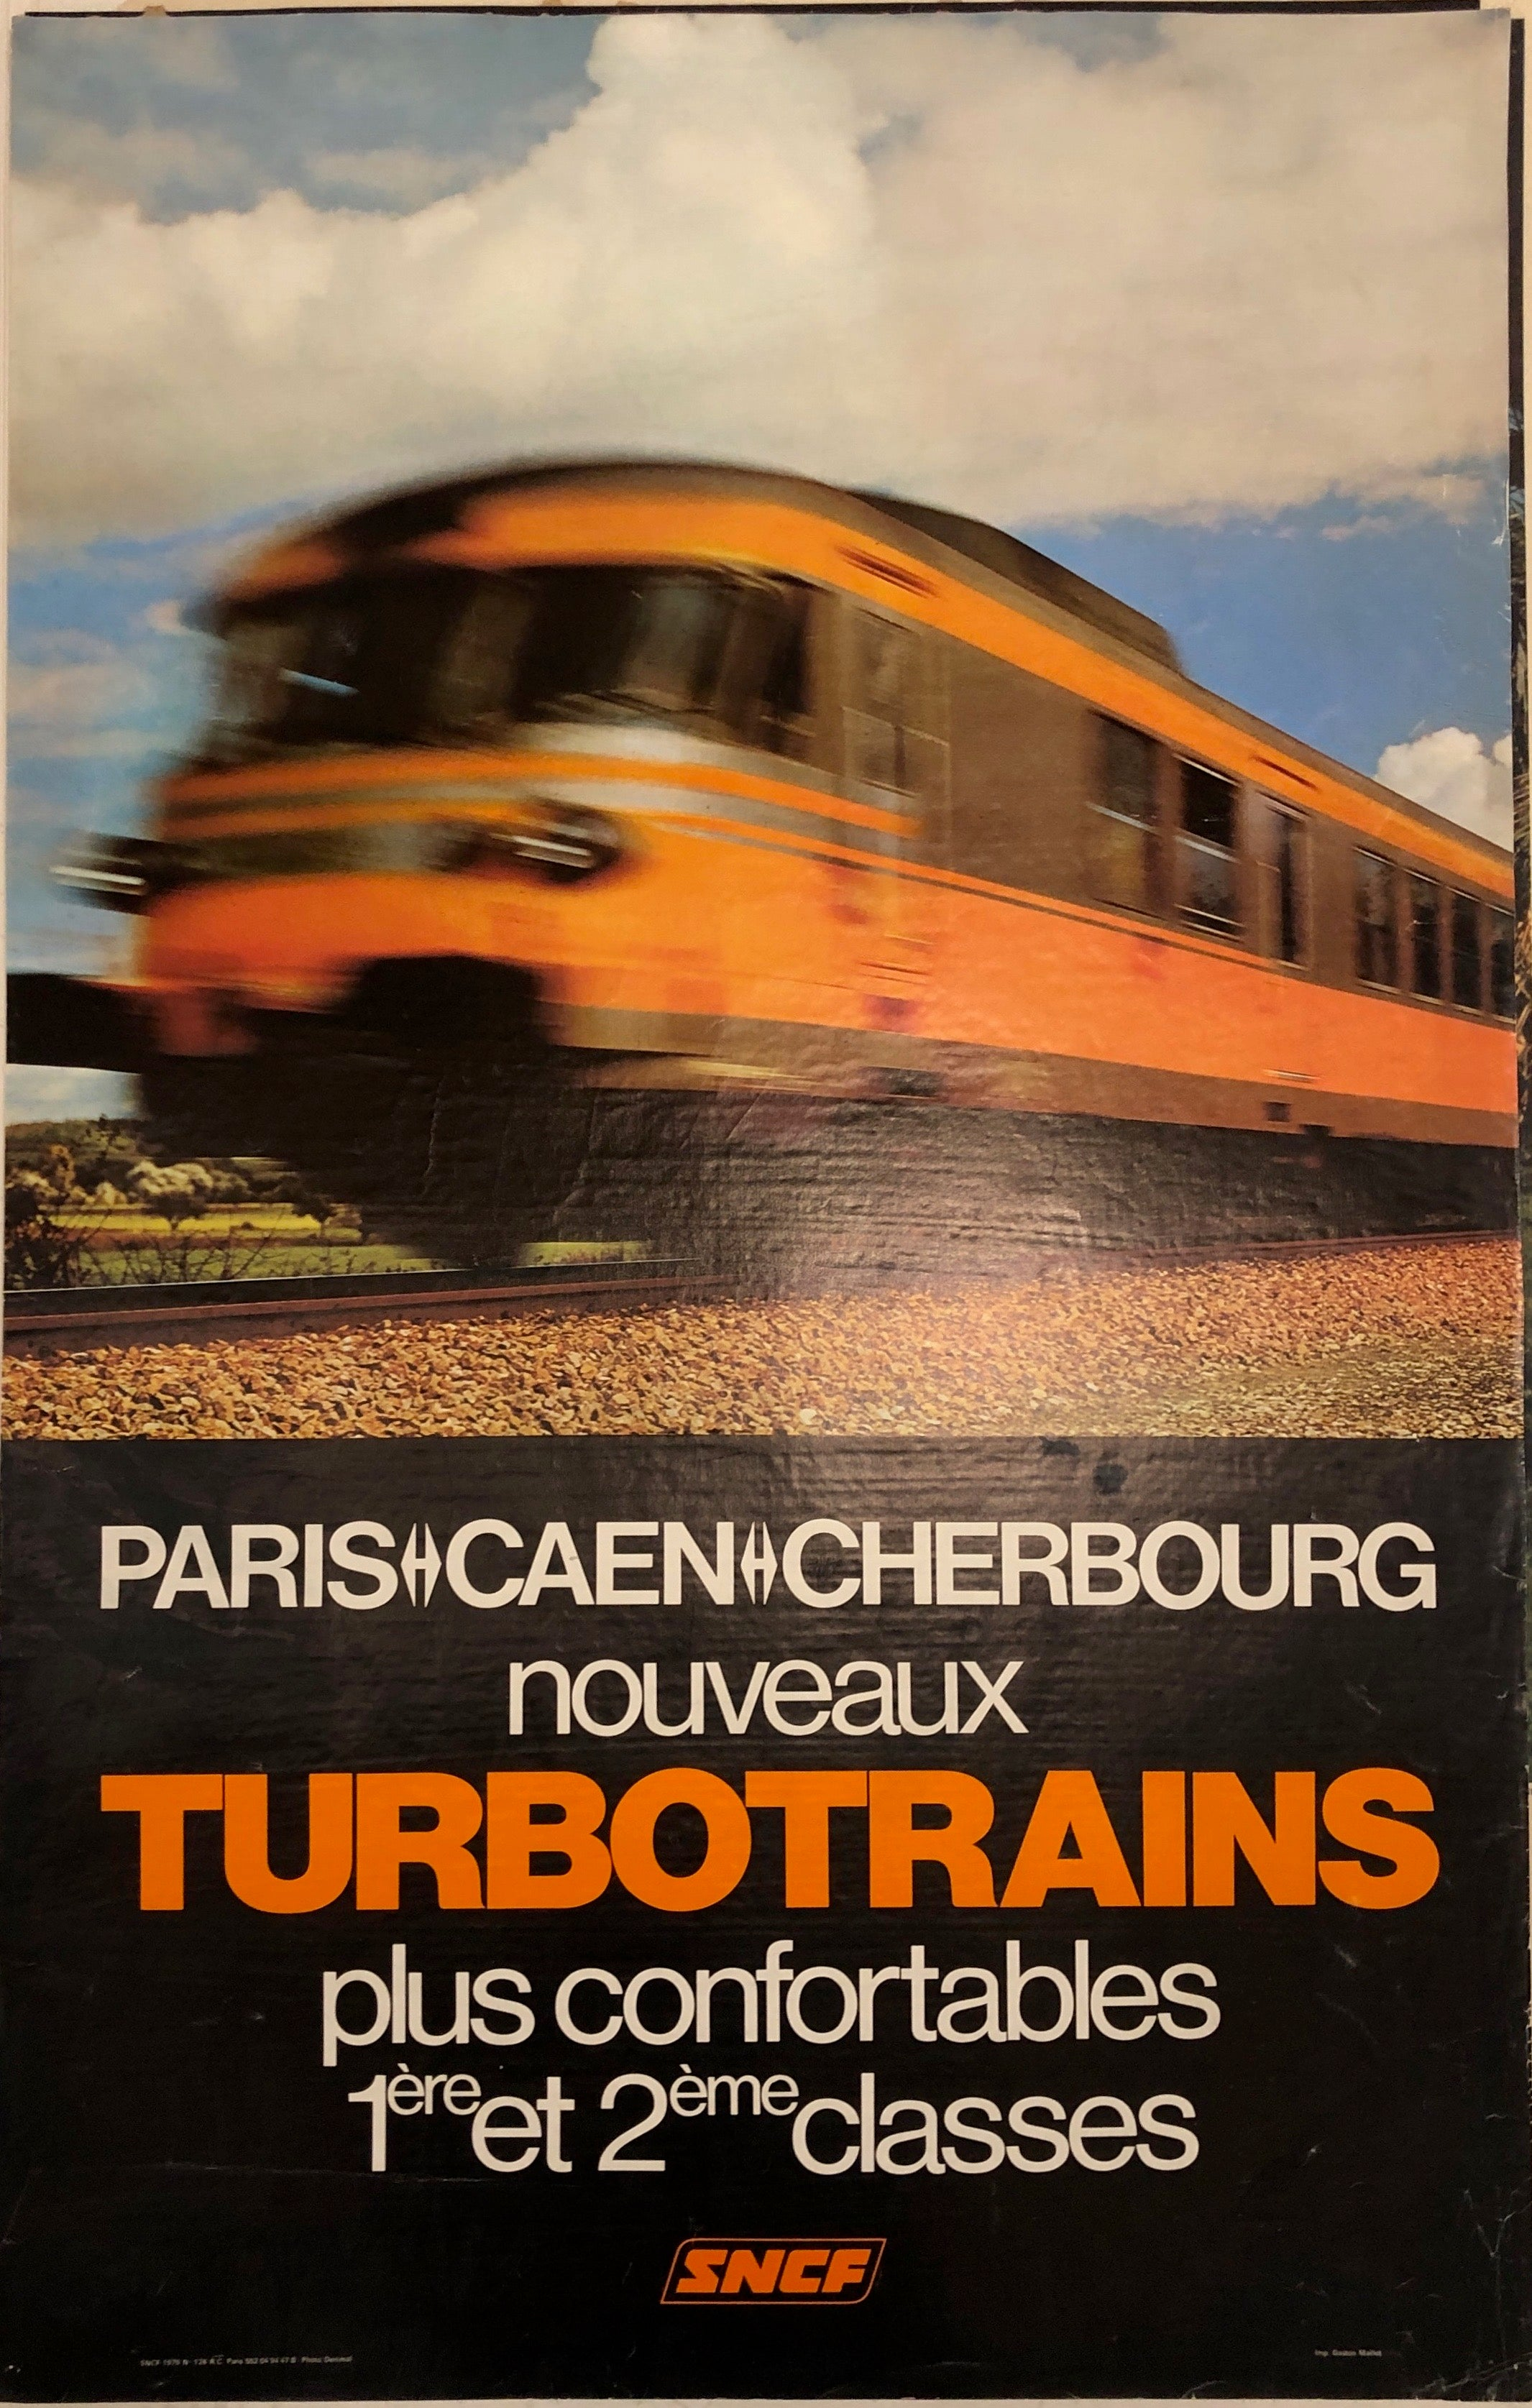 Turbotrains SNCF Poster